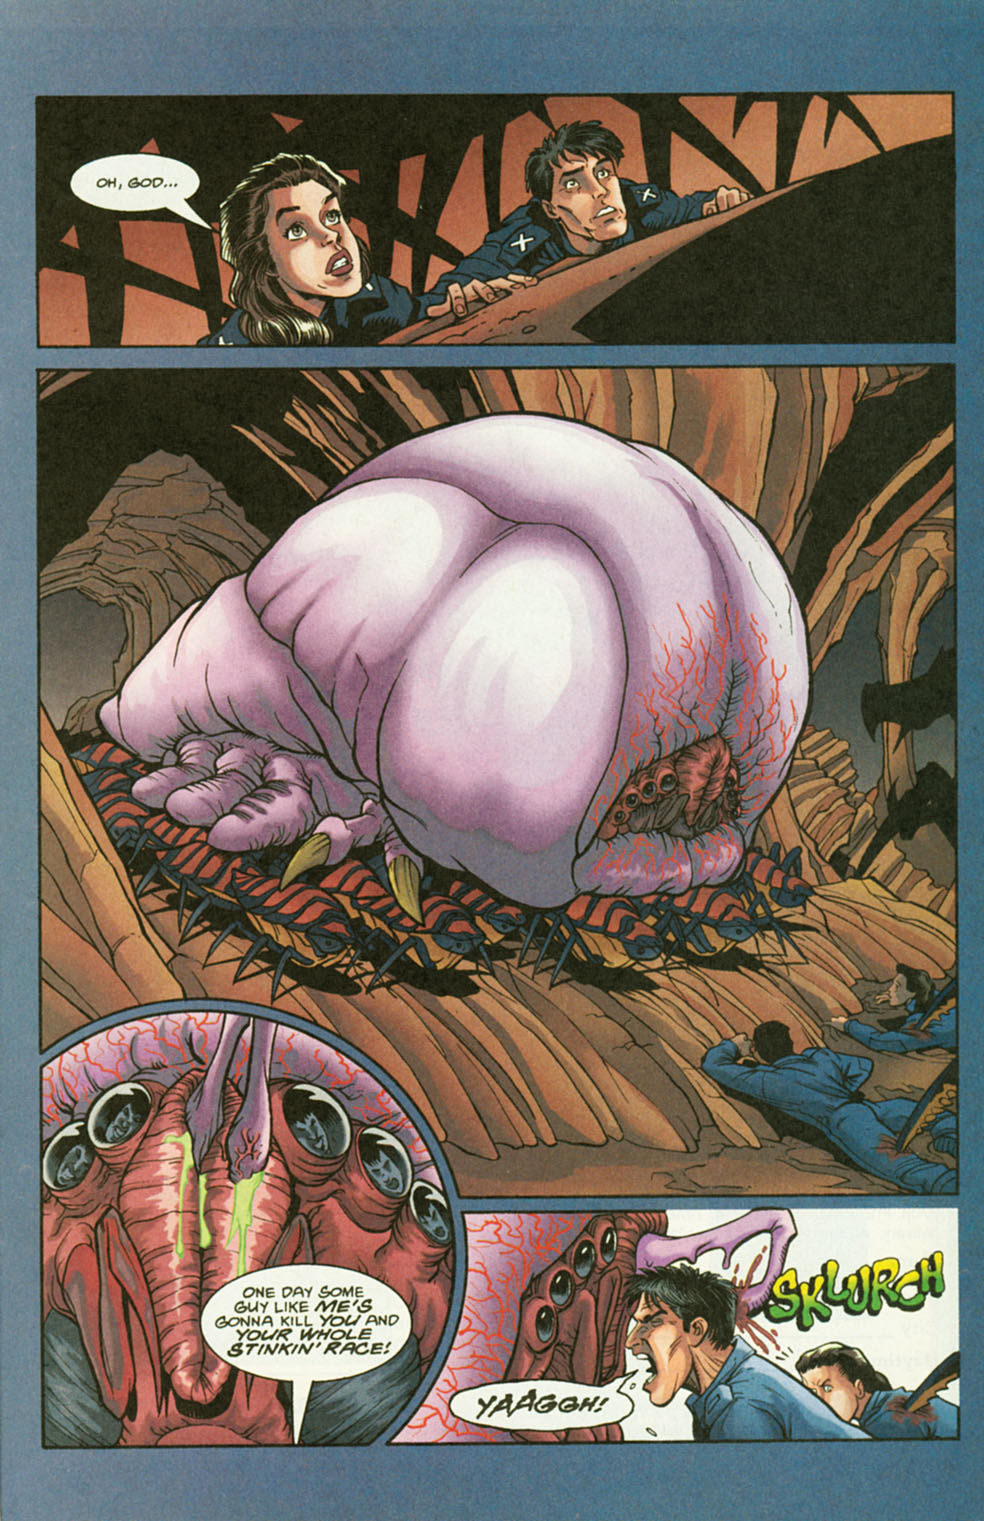 Read online Starship Troopers comic -  Issue #2 - 21